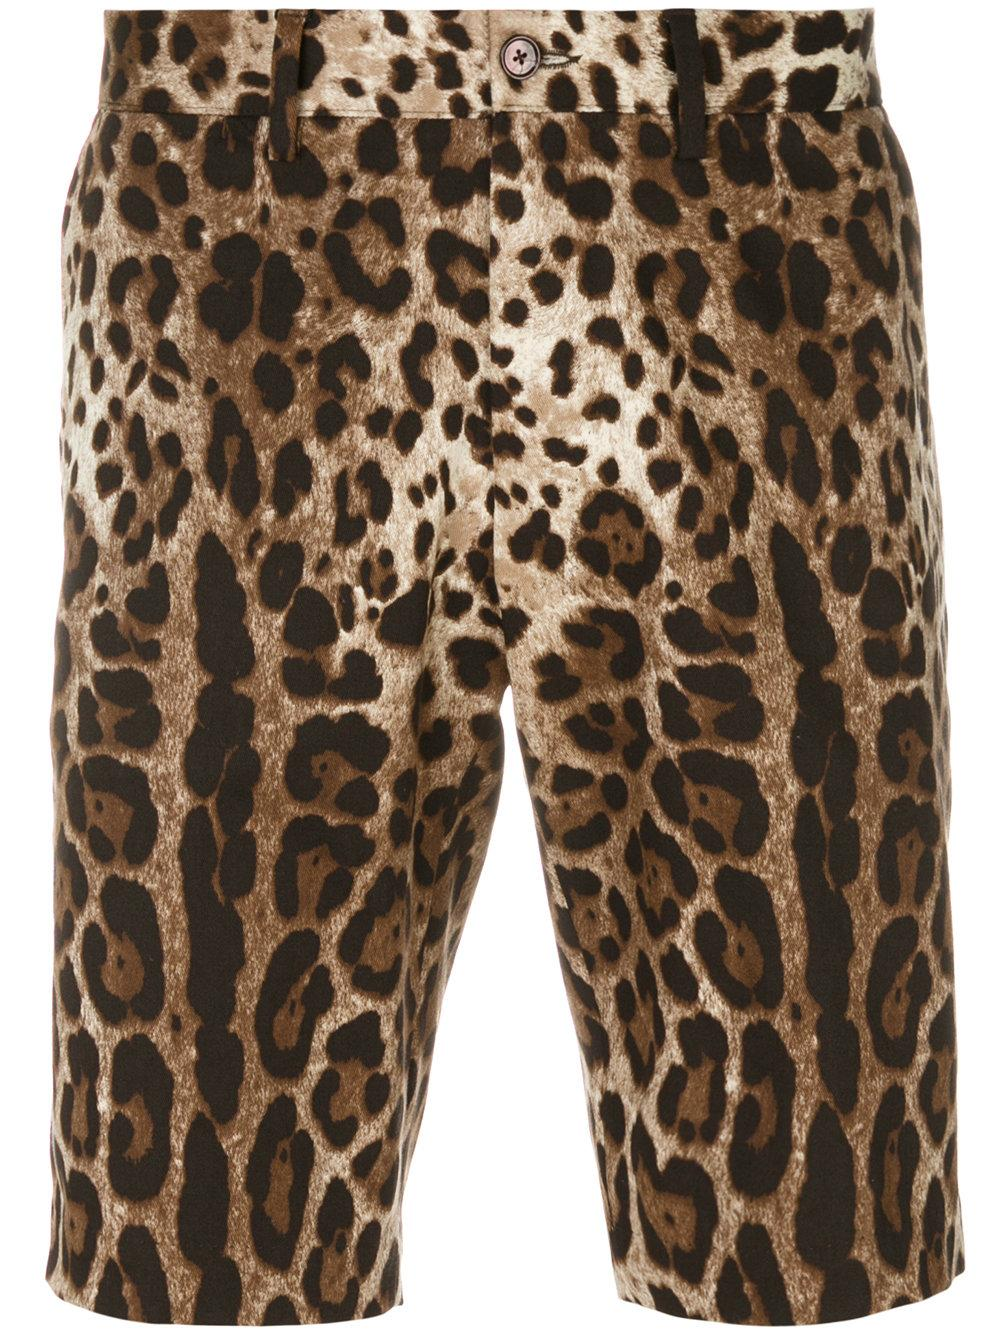 Wholesale Men Leopard Print Shorts